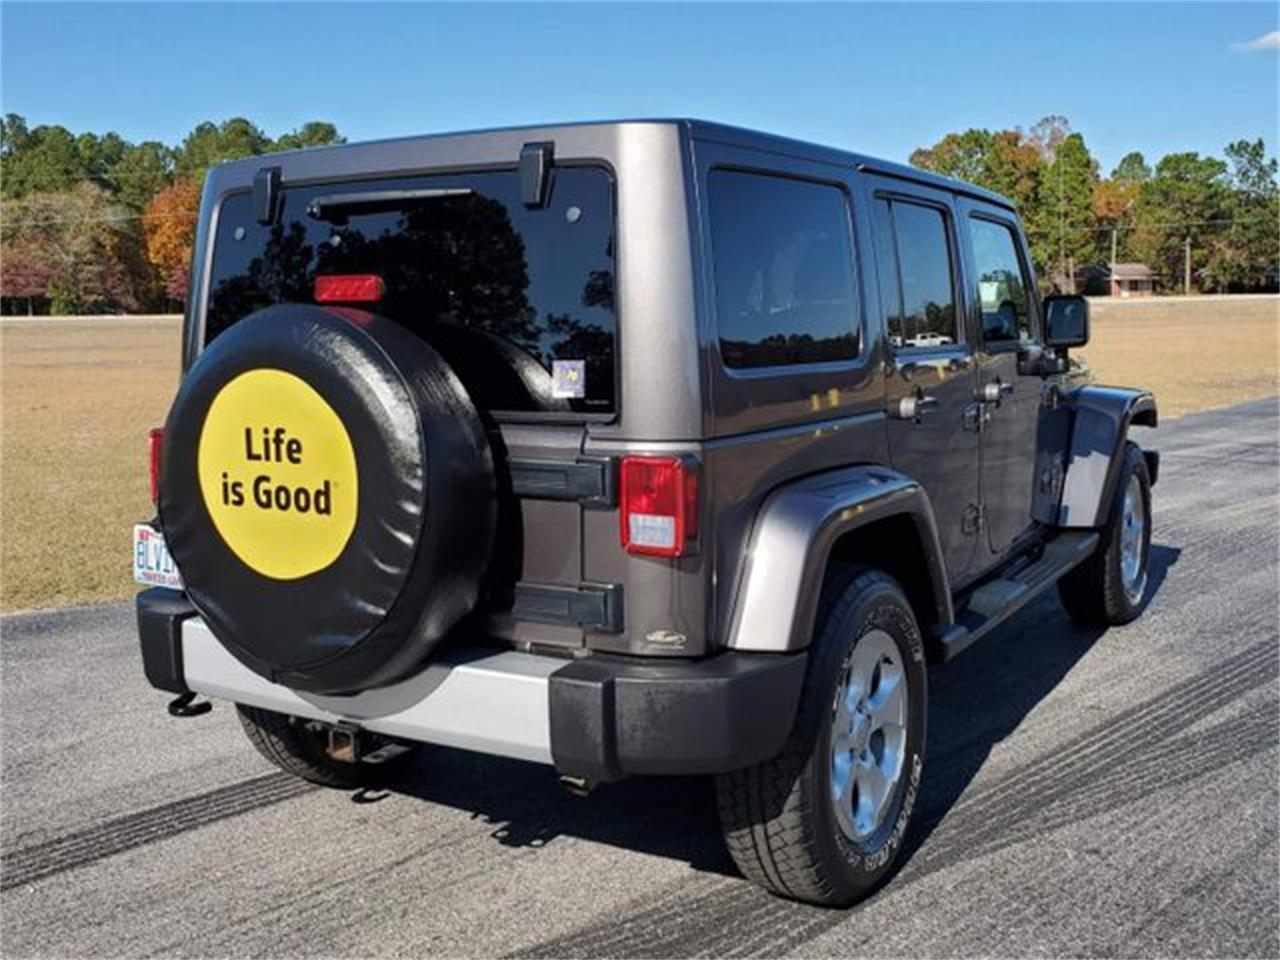 2014 Jeep Wrangler (CC-1298267) for sale in Hope Mills, North Carolina